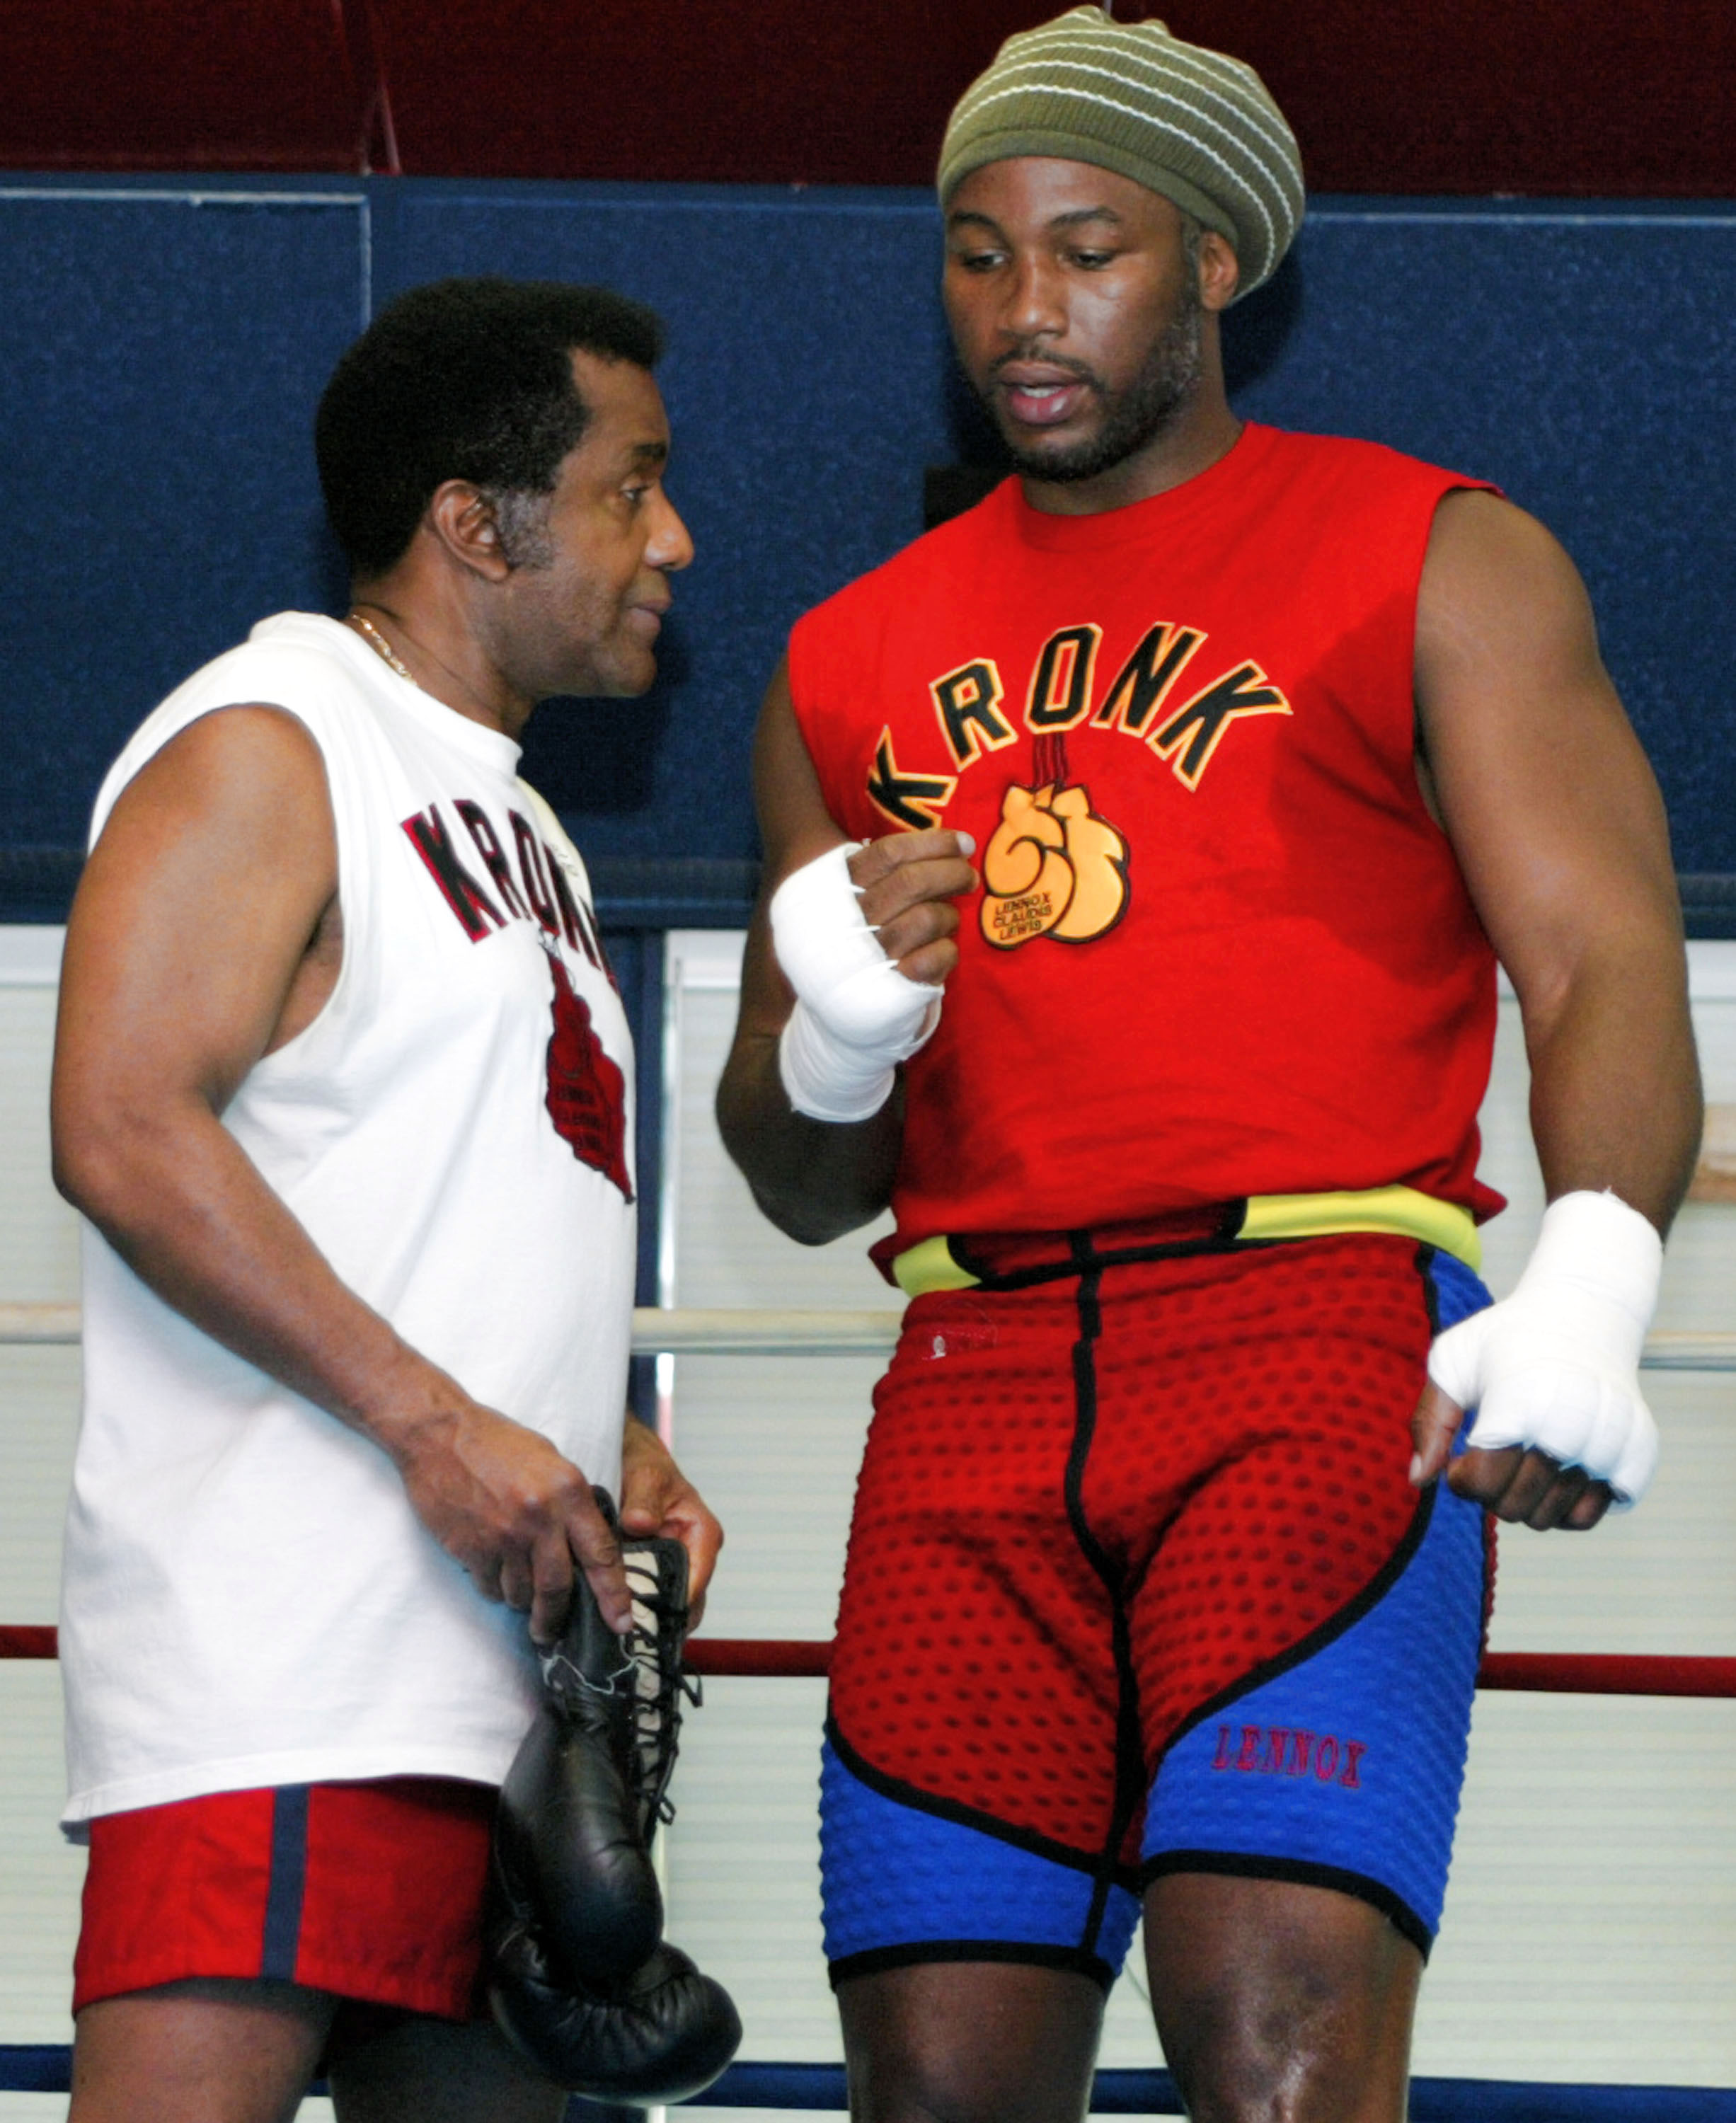 SCOTRUN, PA MAY 29:  Lennox Lewis (r) and his trainer Emanuel Steward (l) speak before a sparing session at his training camp on May 29, 2003 in Scotrun, Pennsylvania.  Lewis is training for is upcoming WBC title defense against Kirk Johnson on June 21, 2